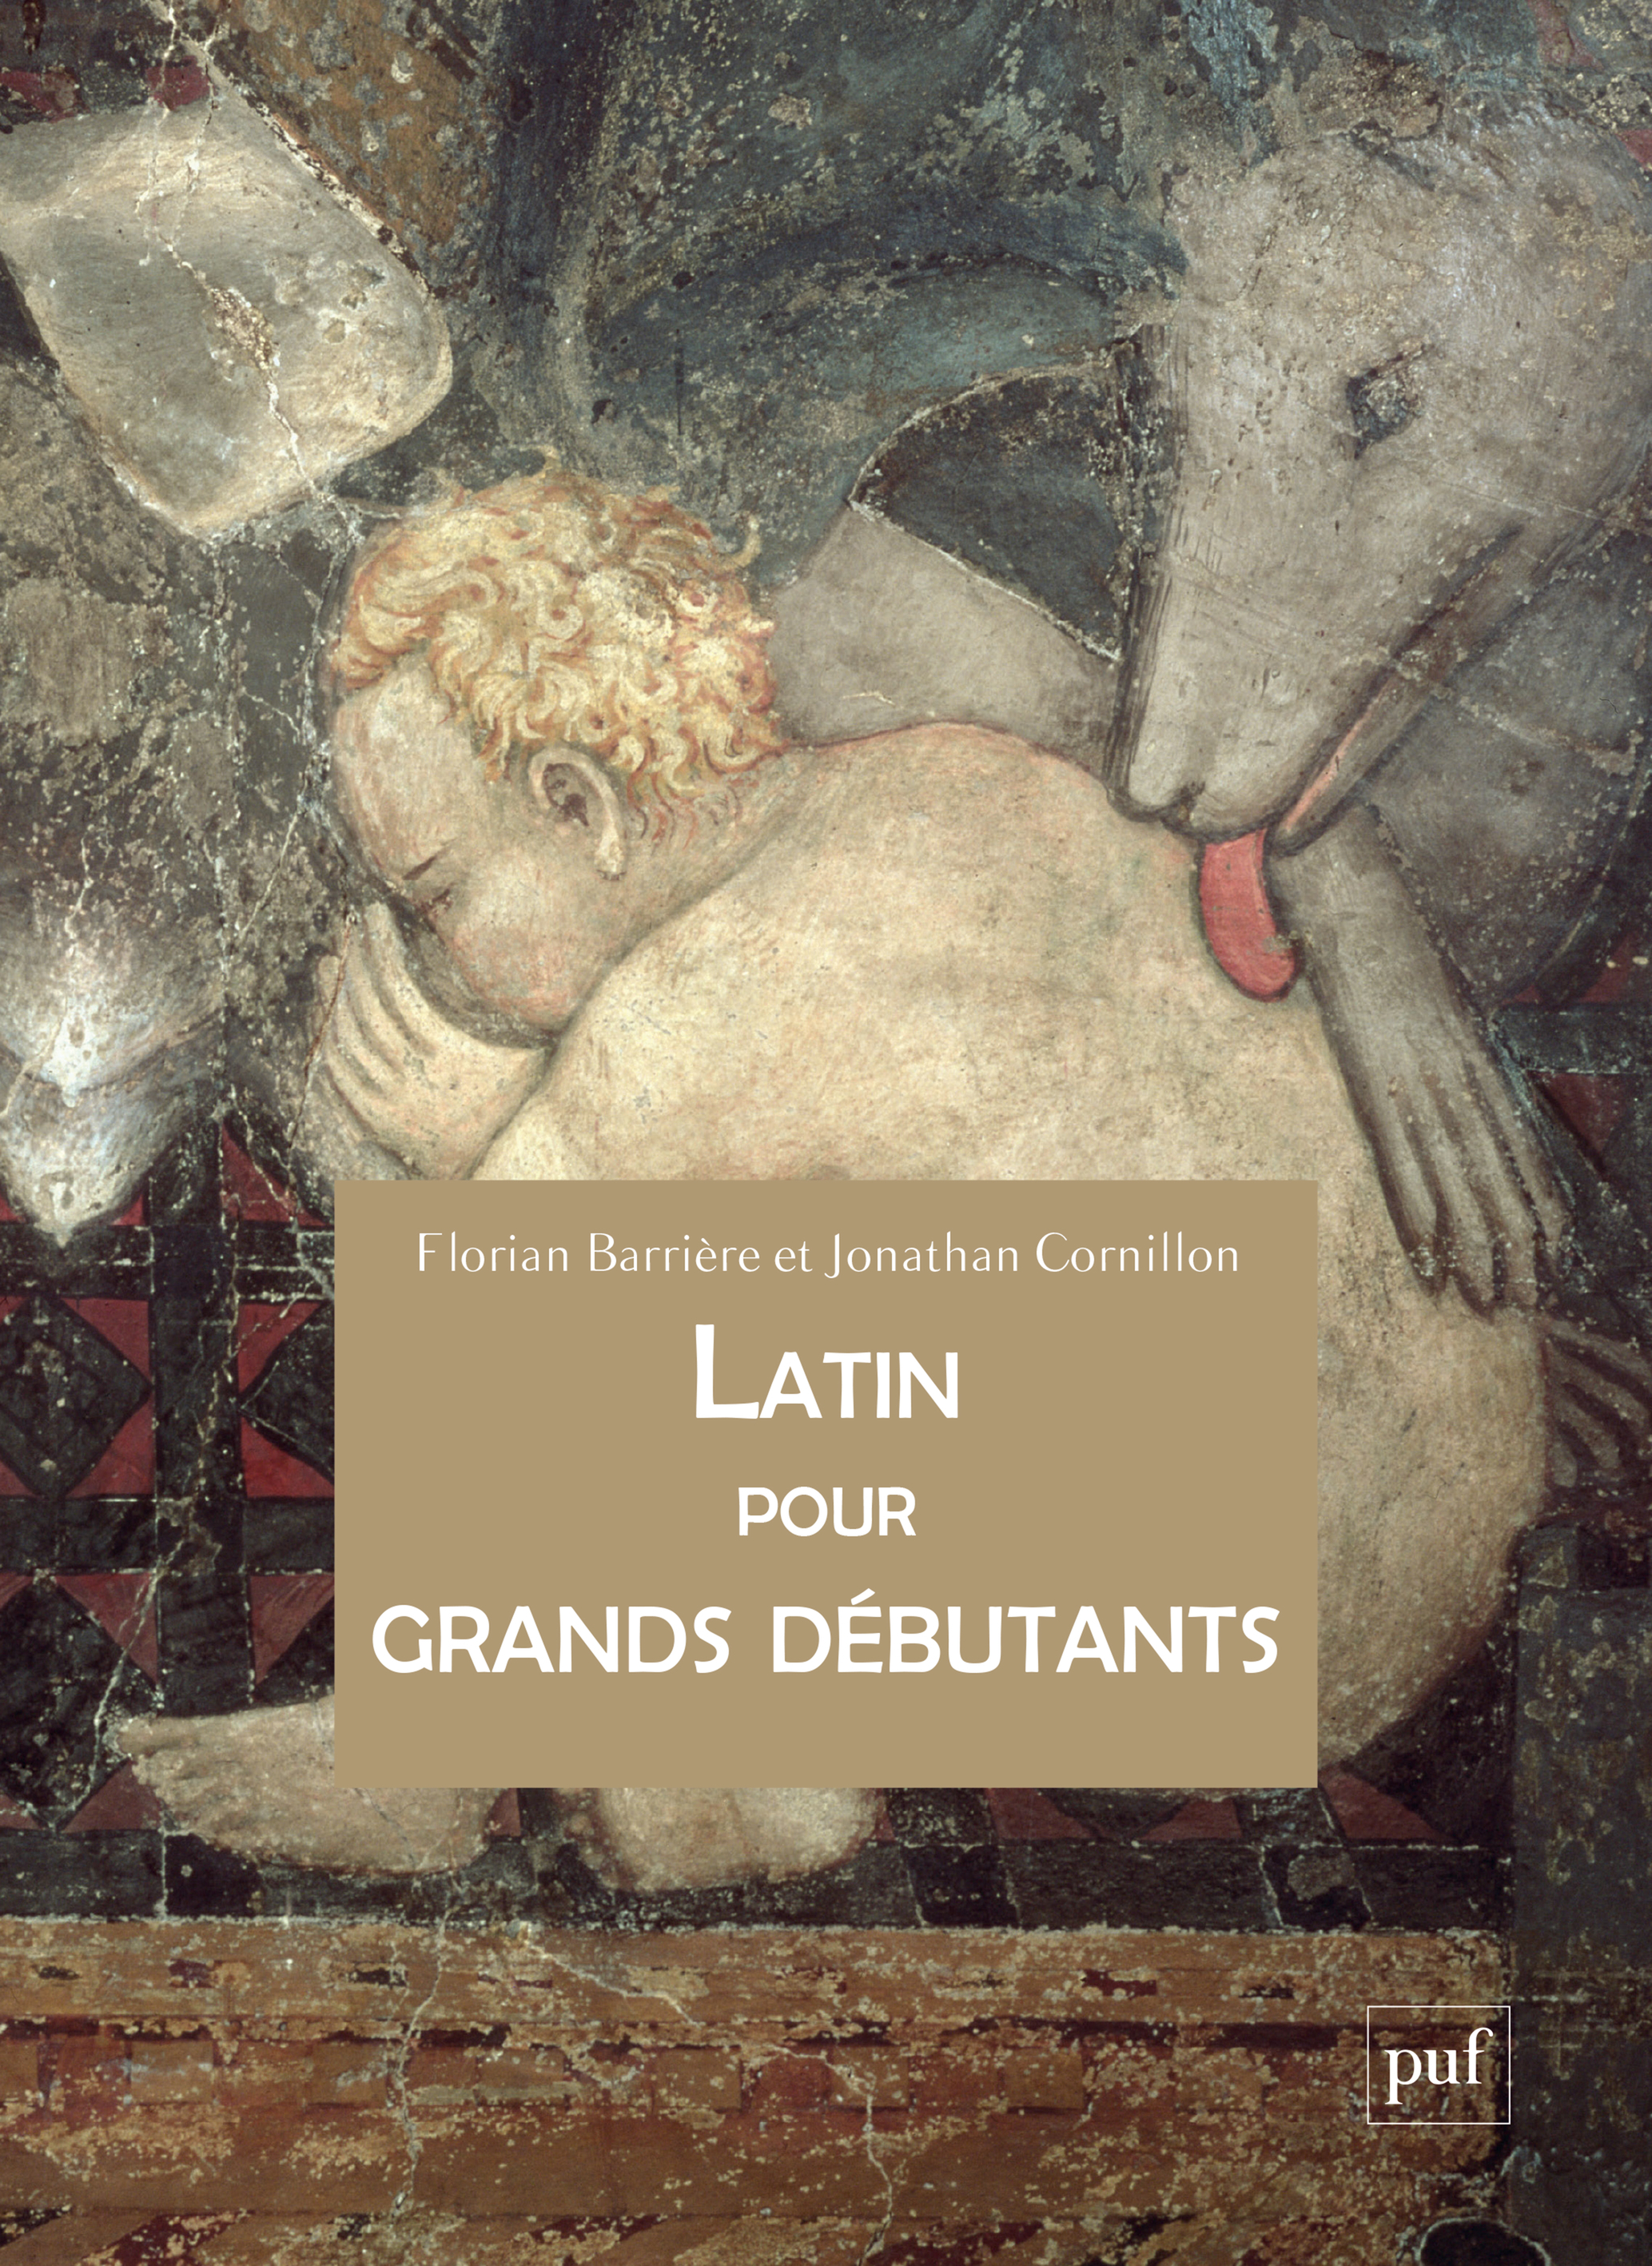 LATIN POUR GRANDS DEBUTANTS